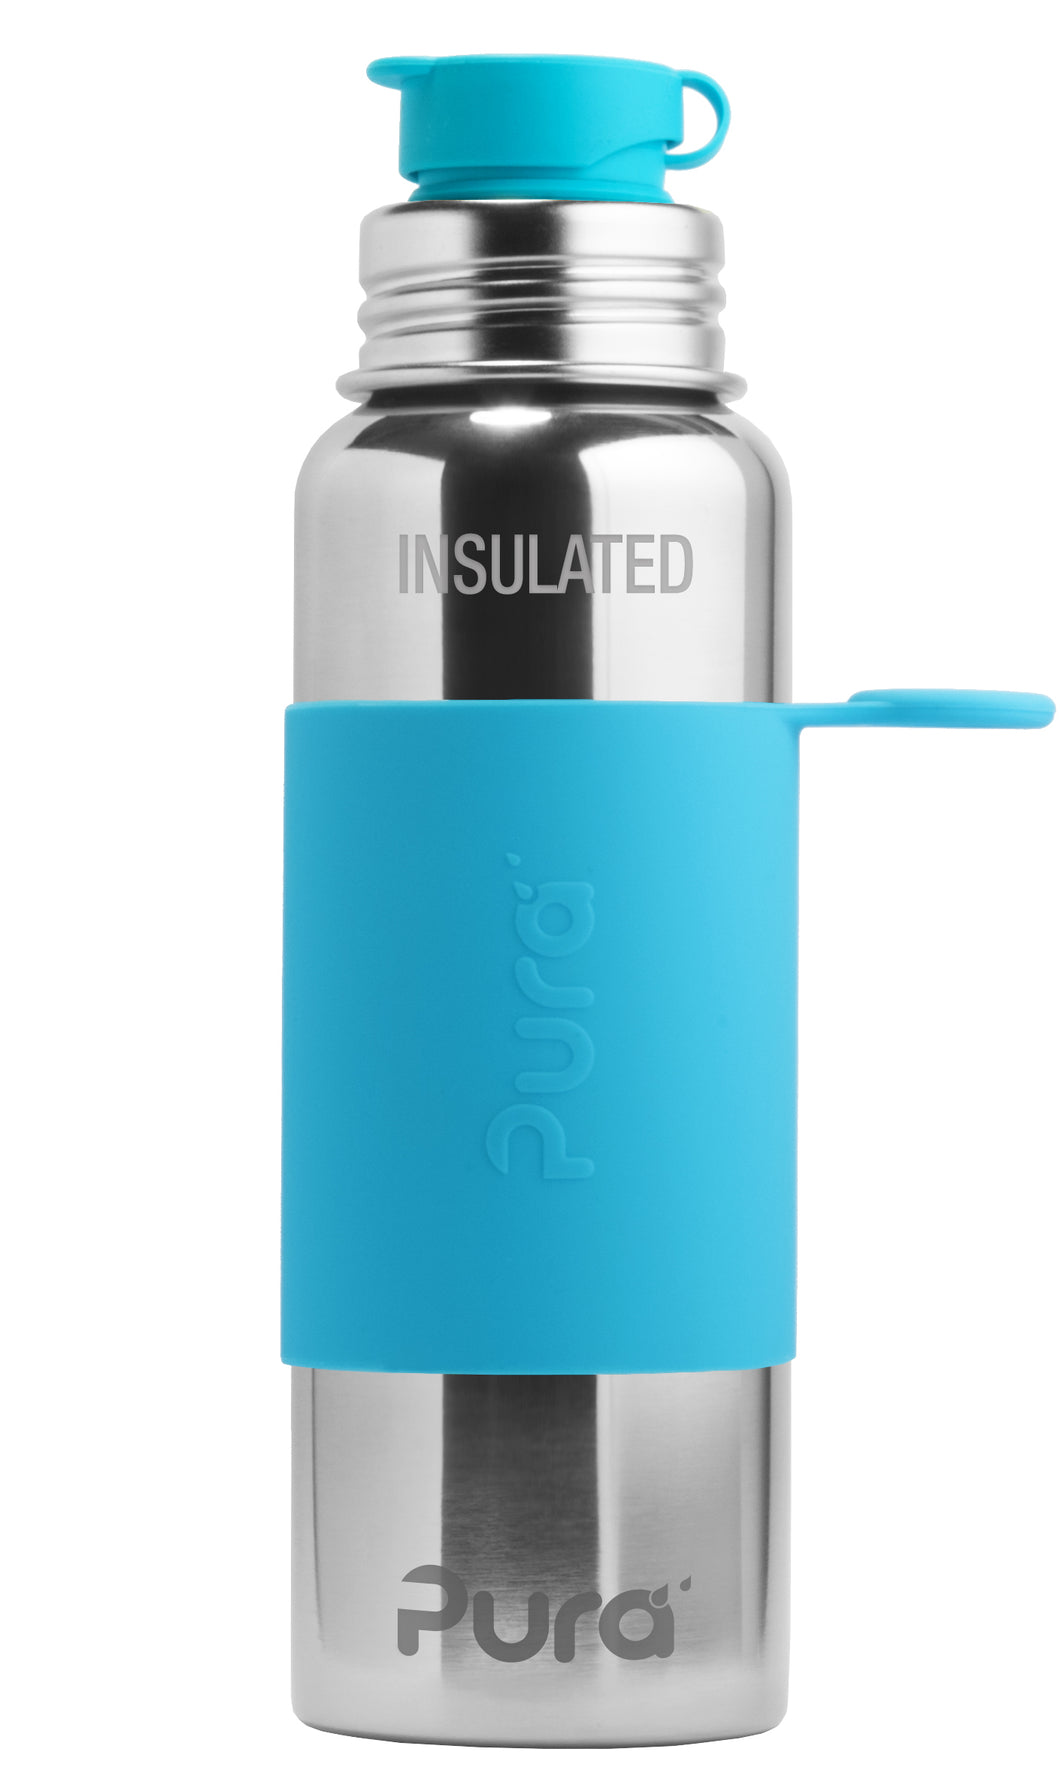 Pura Sport 650 Insulated Stainless Steel Bottle - Aqua